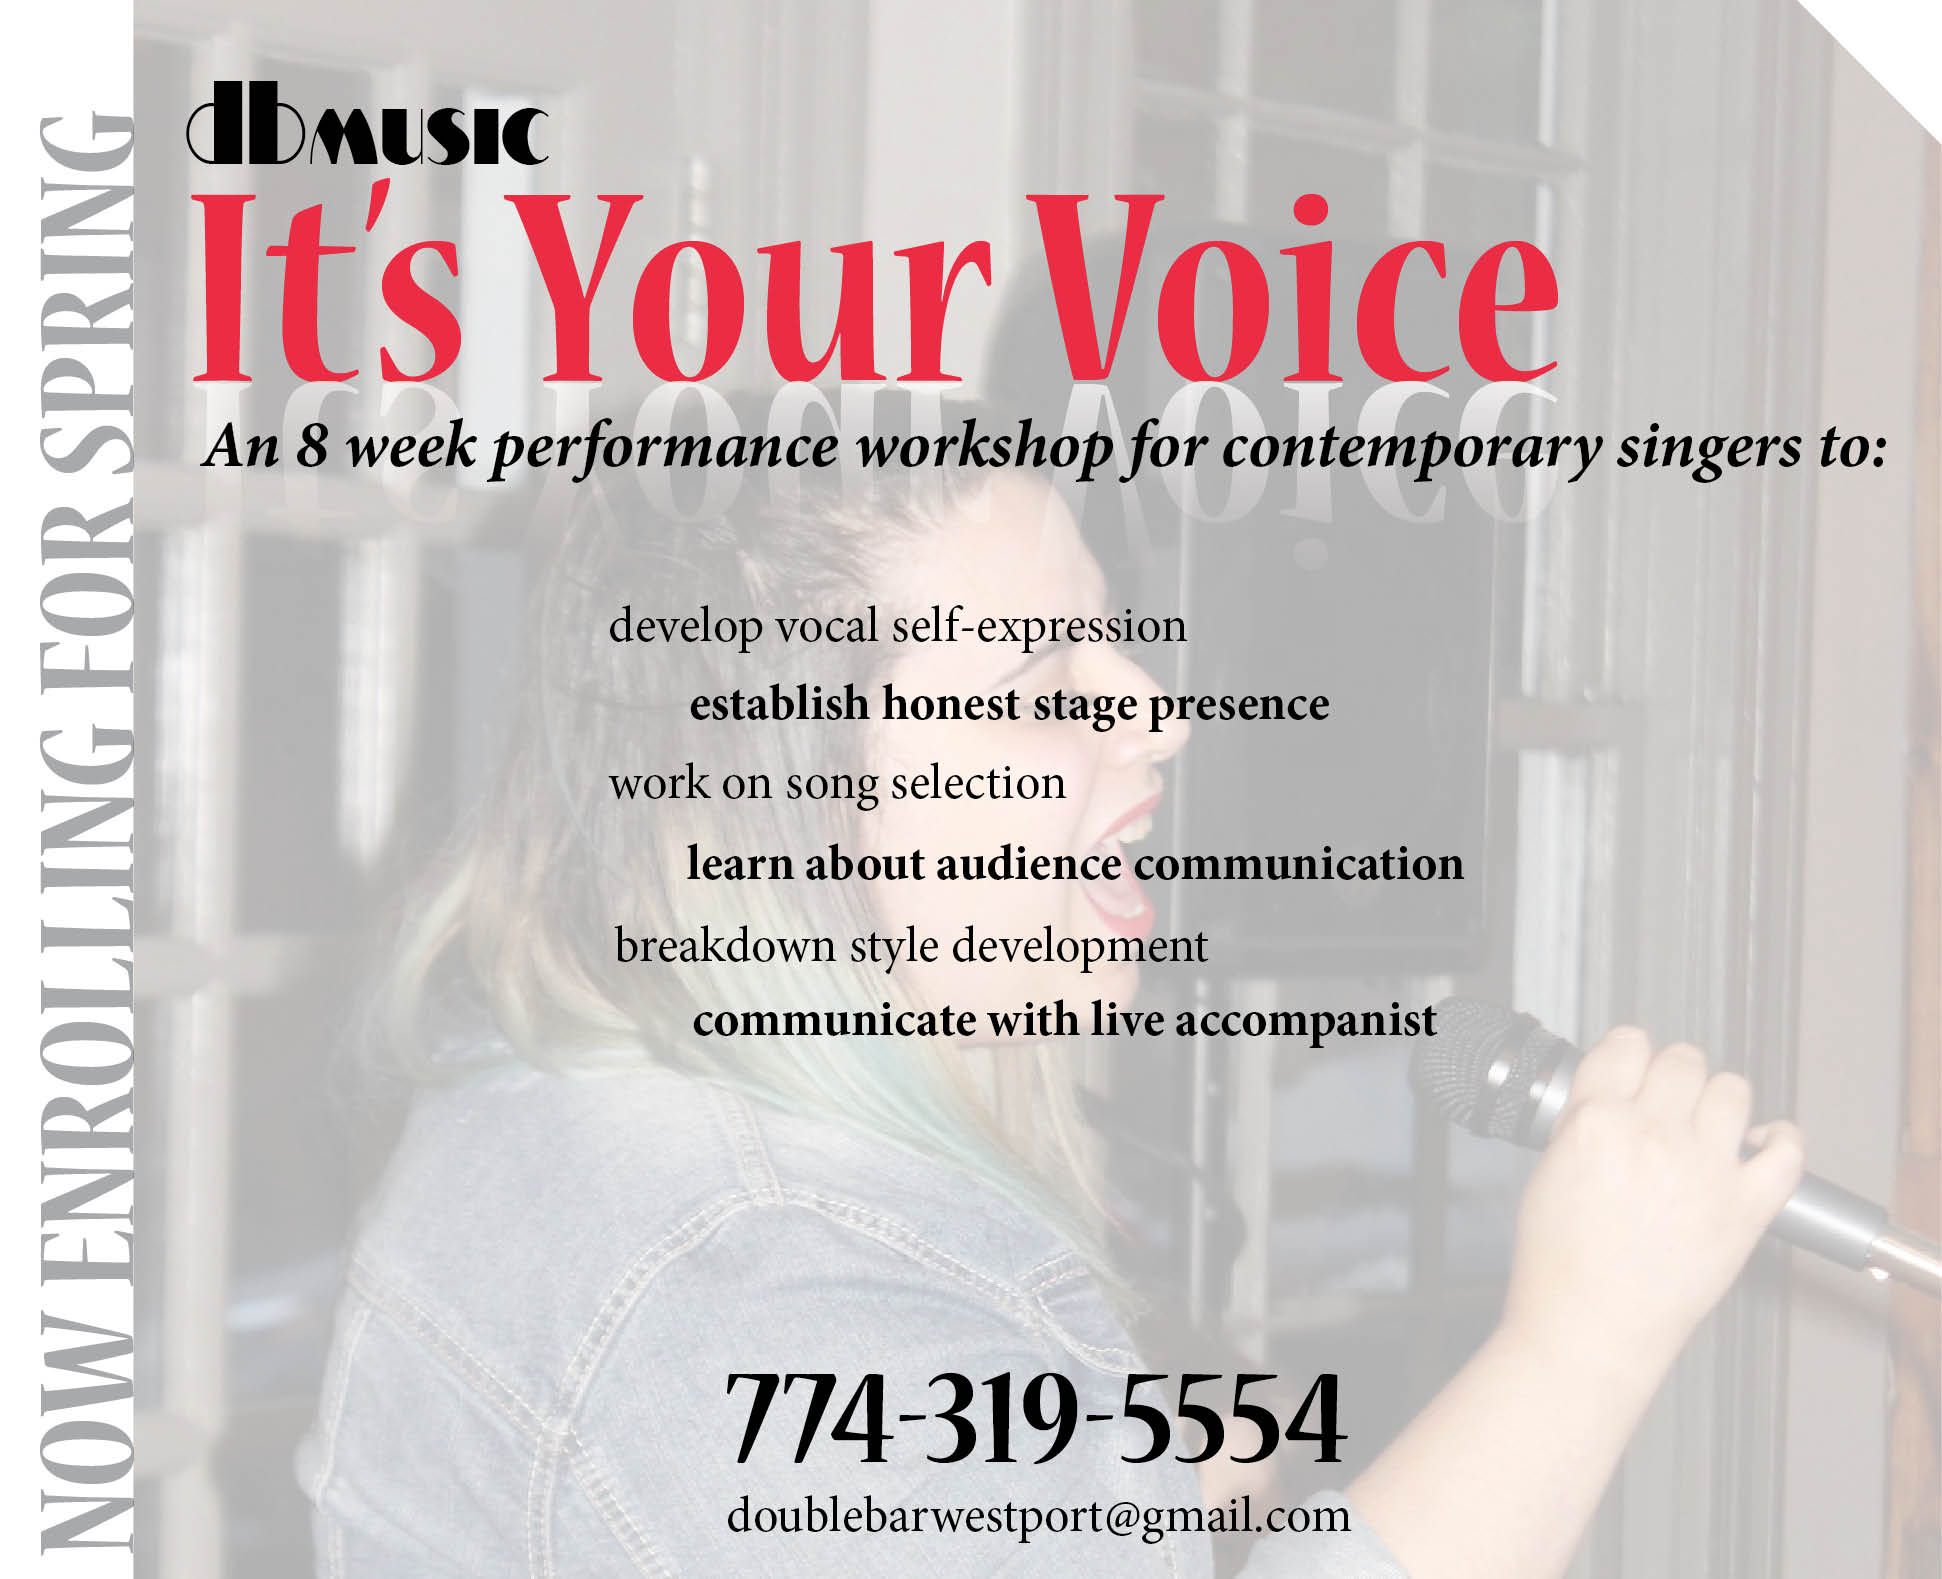 It's Your Voice